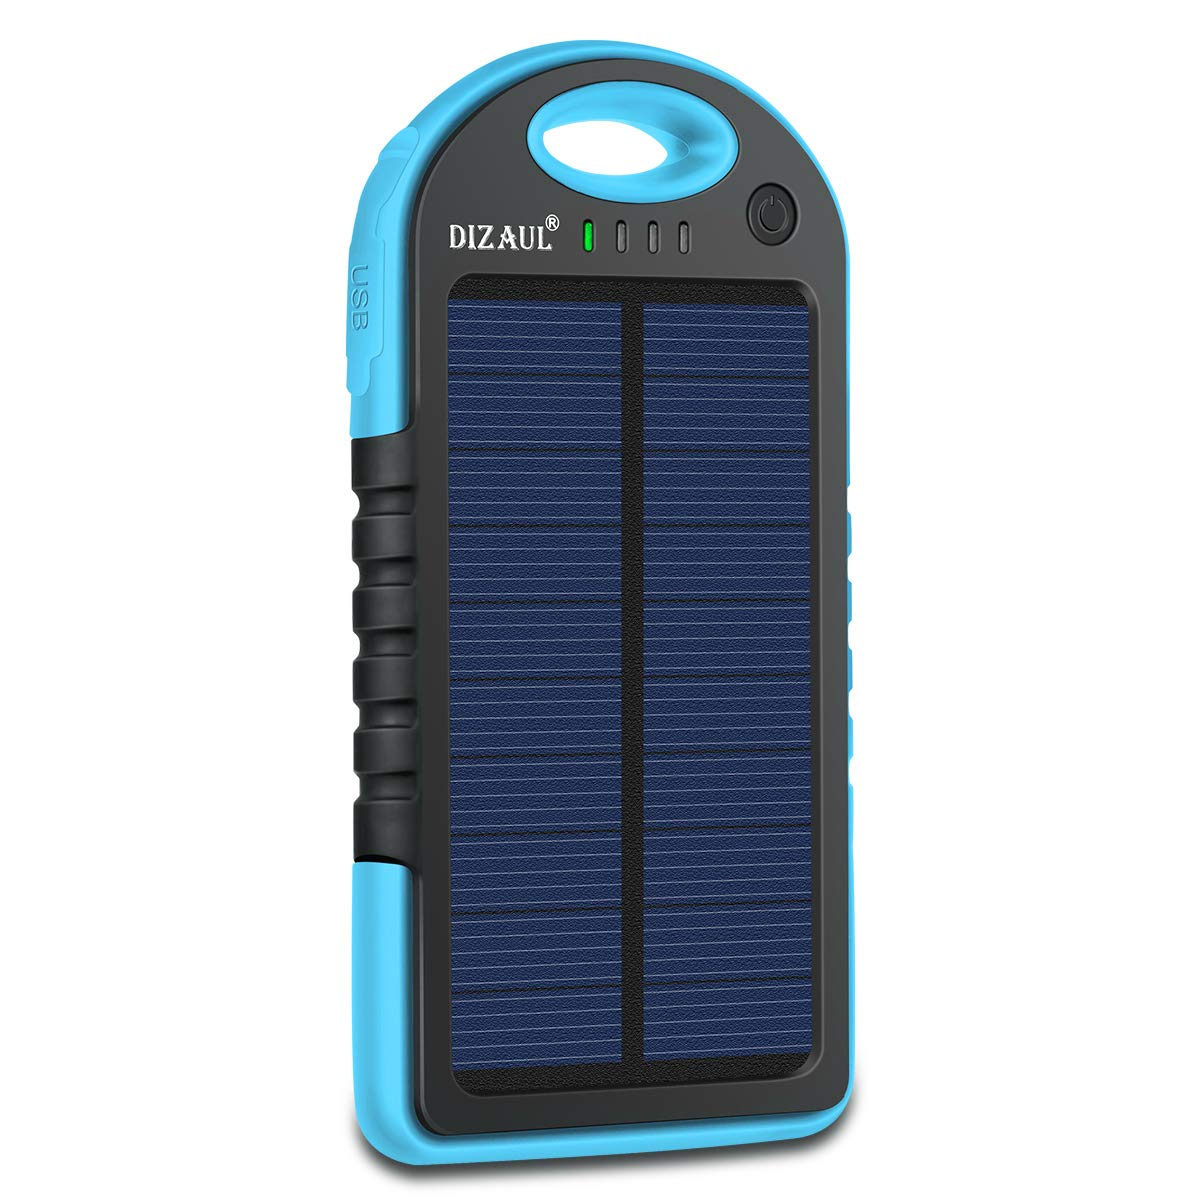 Dizaul Solar Charger, 5000mAh Portable Solar Power Bank Waterproof/Shockproof/Dustproof Dual USB Battery Bank for Cell Phone,iPhone,Samsung,Android Phones,Windows Phones,GoPro Camera,GPS by dizauL